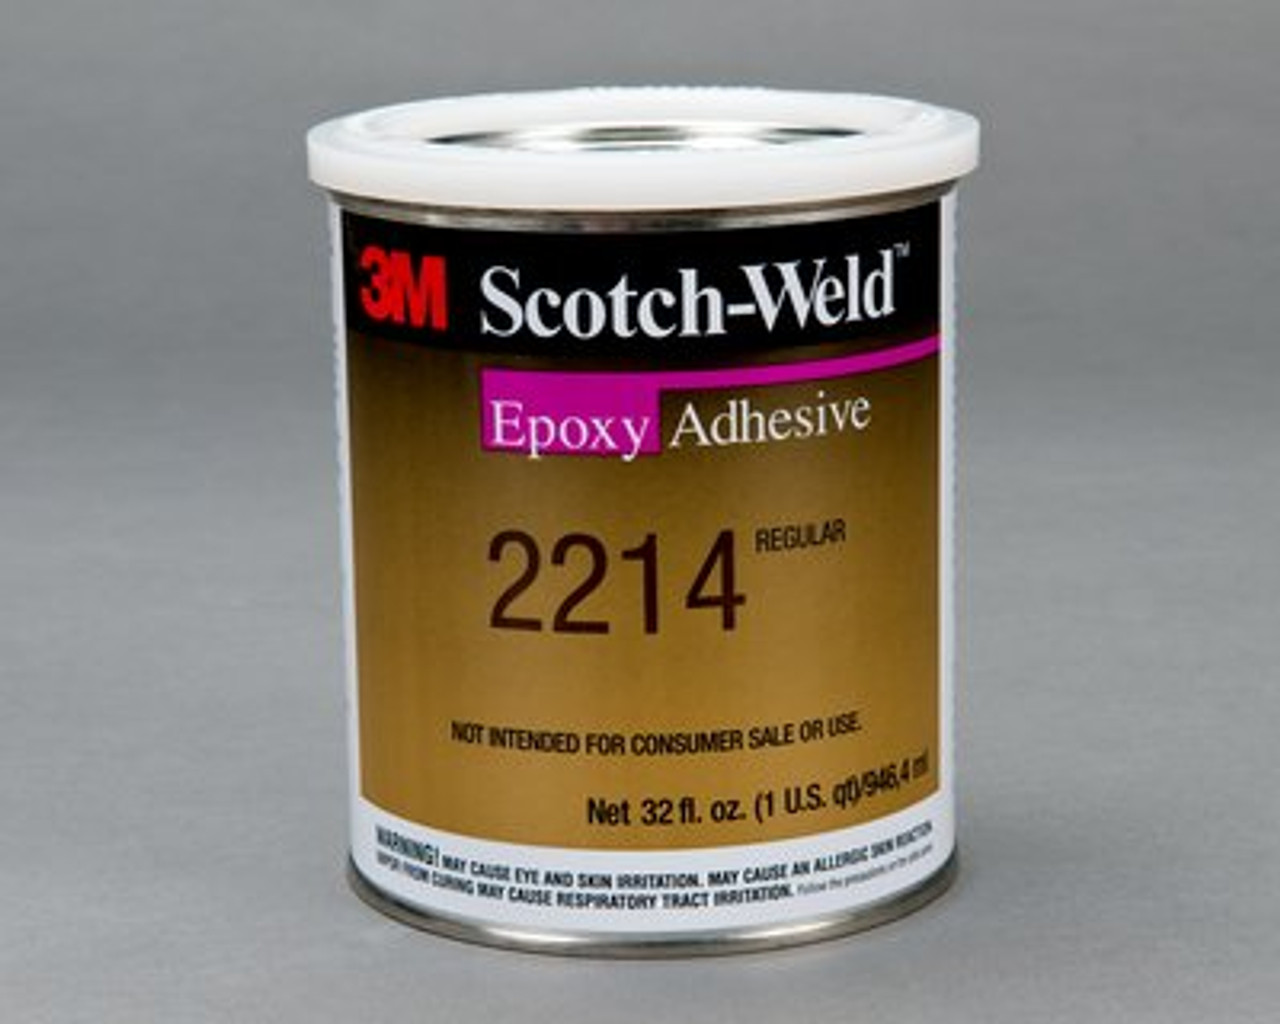 3M™ Scotch-Weld™ Epoxy Adhesive 2214 Non-Metallic Cream, 2 fl oz *NON RETURNABLE ITEM. ADDITIONAL SURCHARGE APPLIES TO THIS ITEM. CHARGE WILL NOT SHOW ON INITIAL CONFIRMATION. SEE PRODUCT DESCRIPTION FOR MORE INFO*